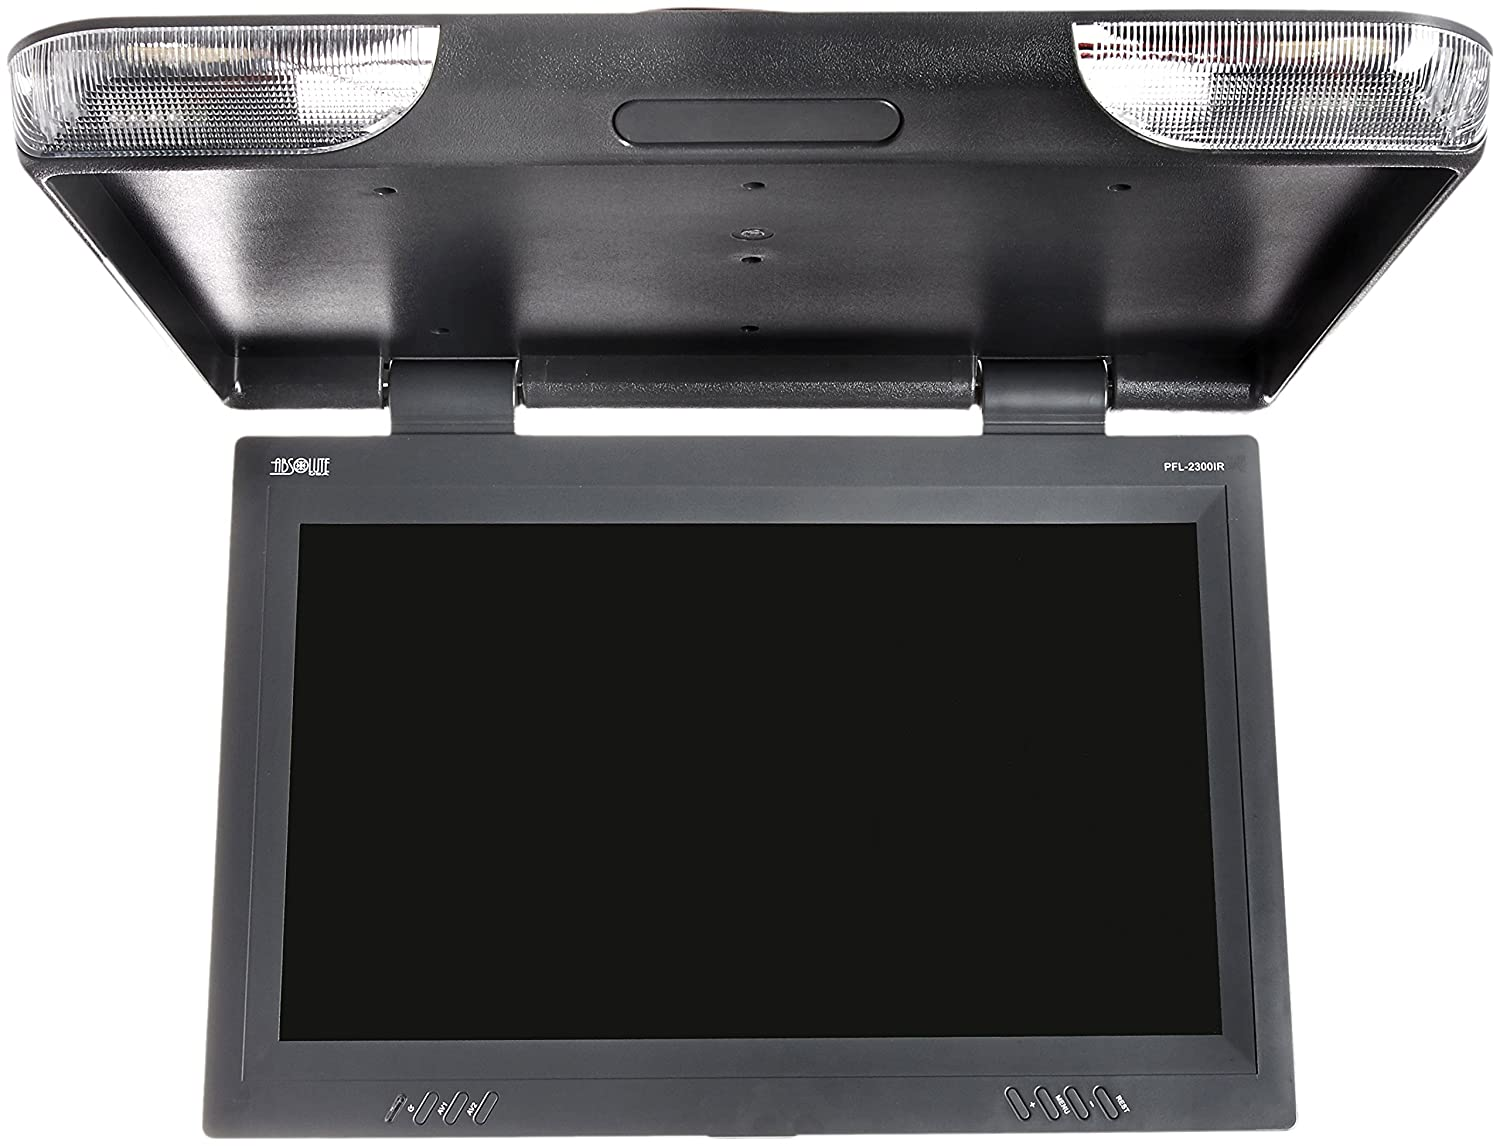 Absolute PFL-2300IRG 23-Inches TFT LCD Overhead Flip Down Monitor with Built-In IR Transmitter and Remote Control Absolute USA Grey